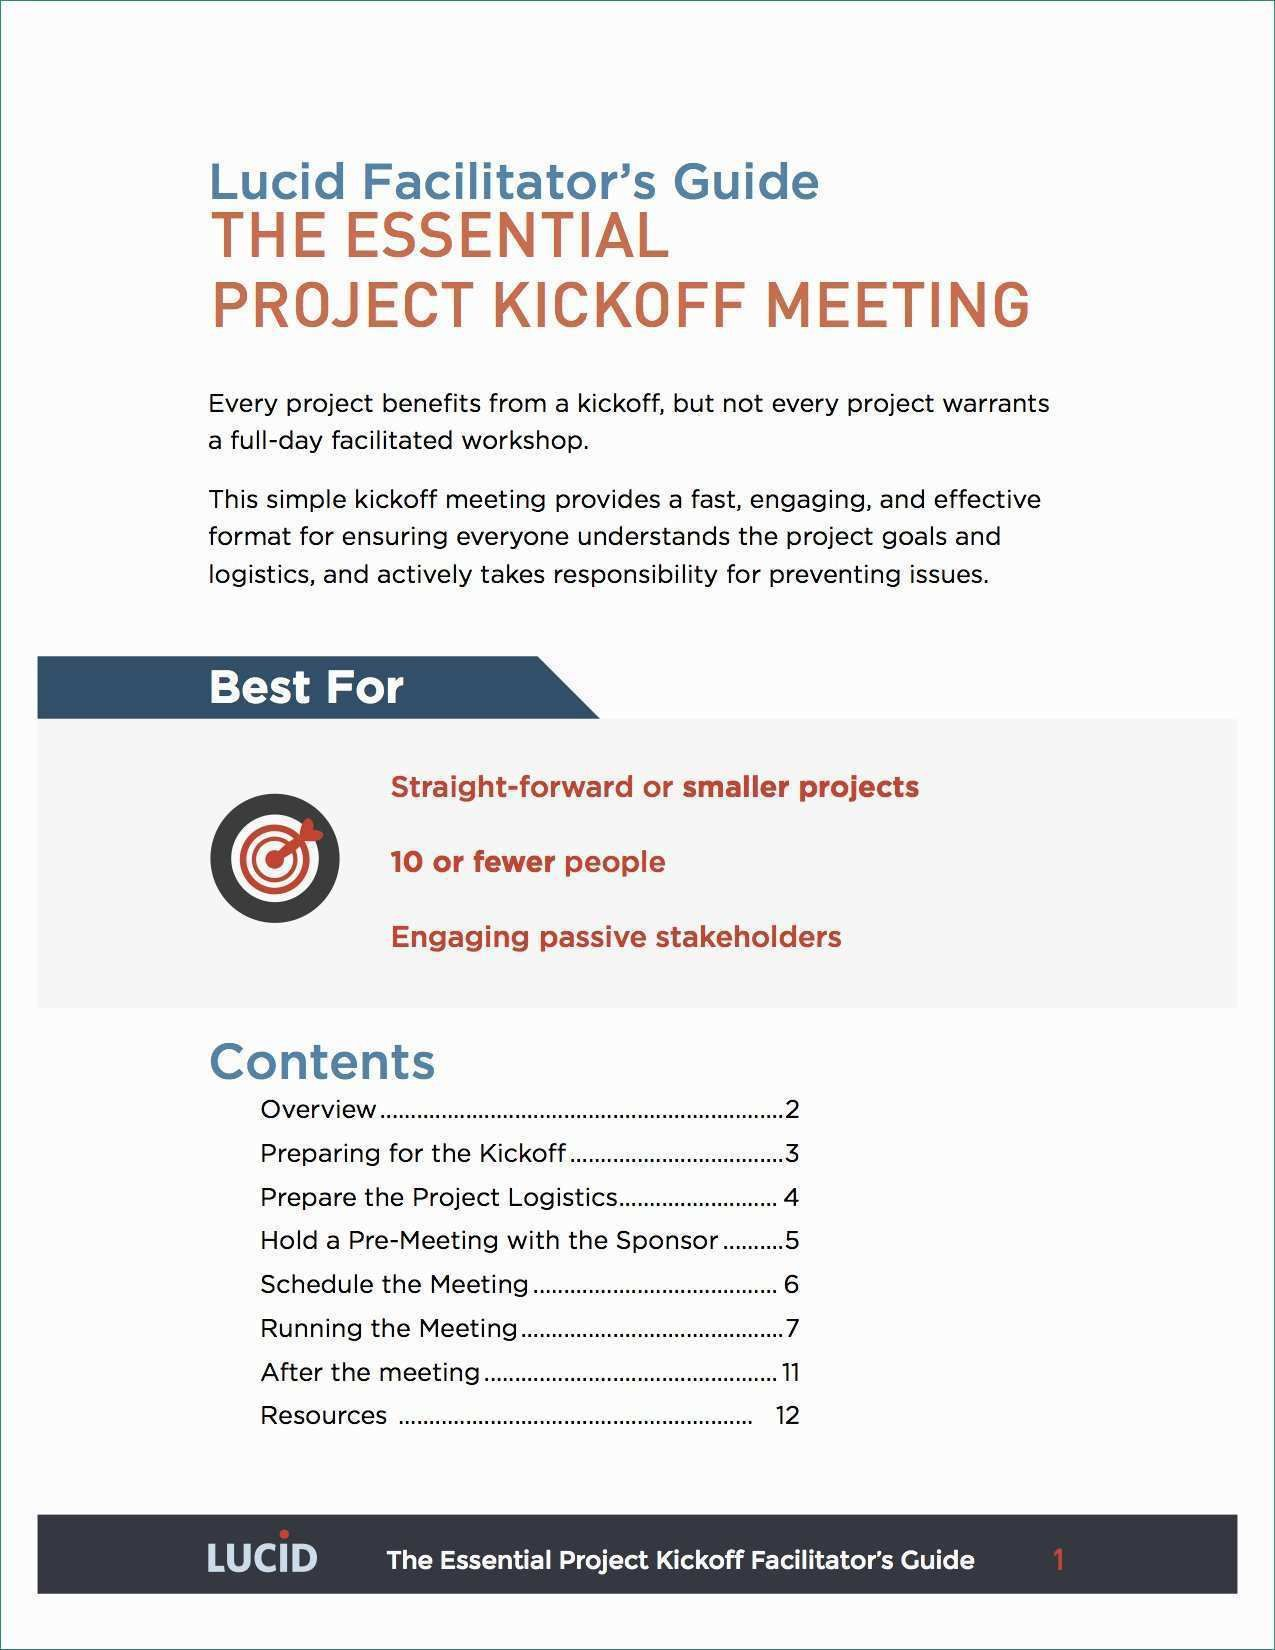 003 Astounding Construction Project Kickoff Meeting Agenda Template Image Full